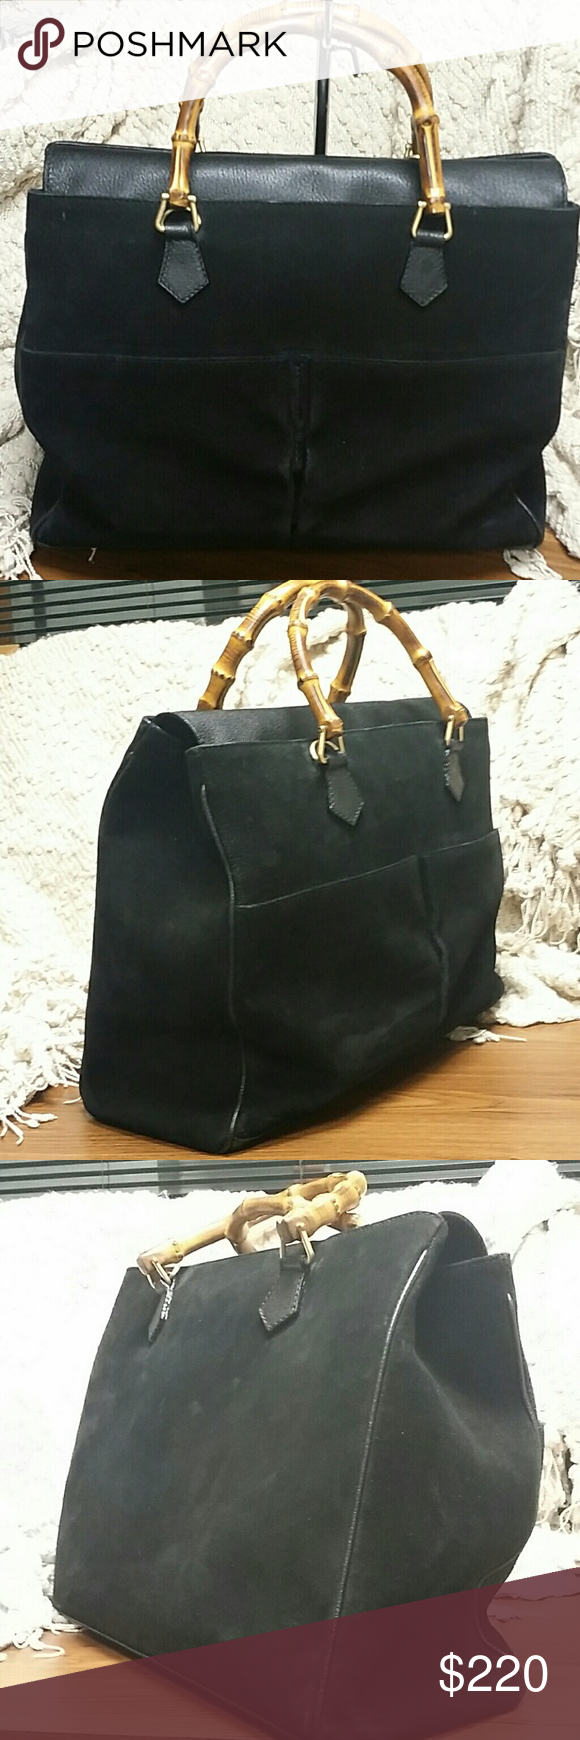 6a899c34582 Authentic Gucci bamboo two way Very large. Comes with original long leather  crossbody strap.